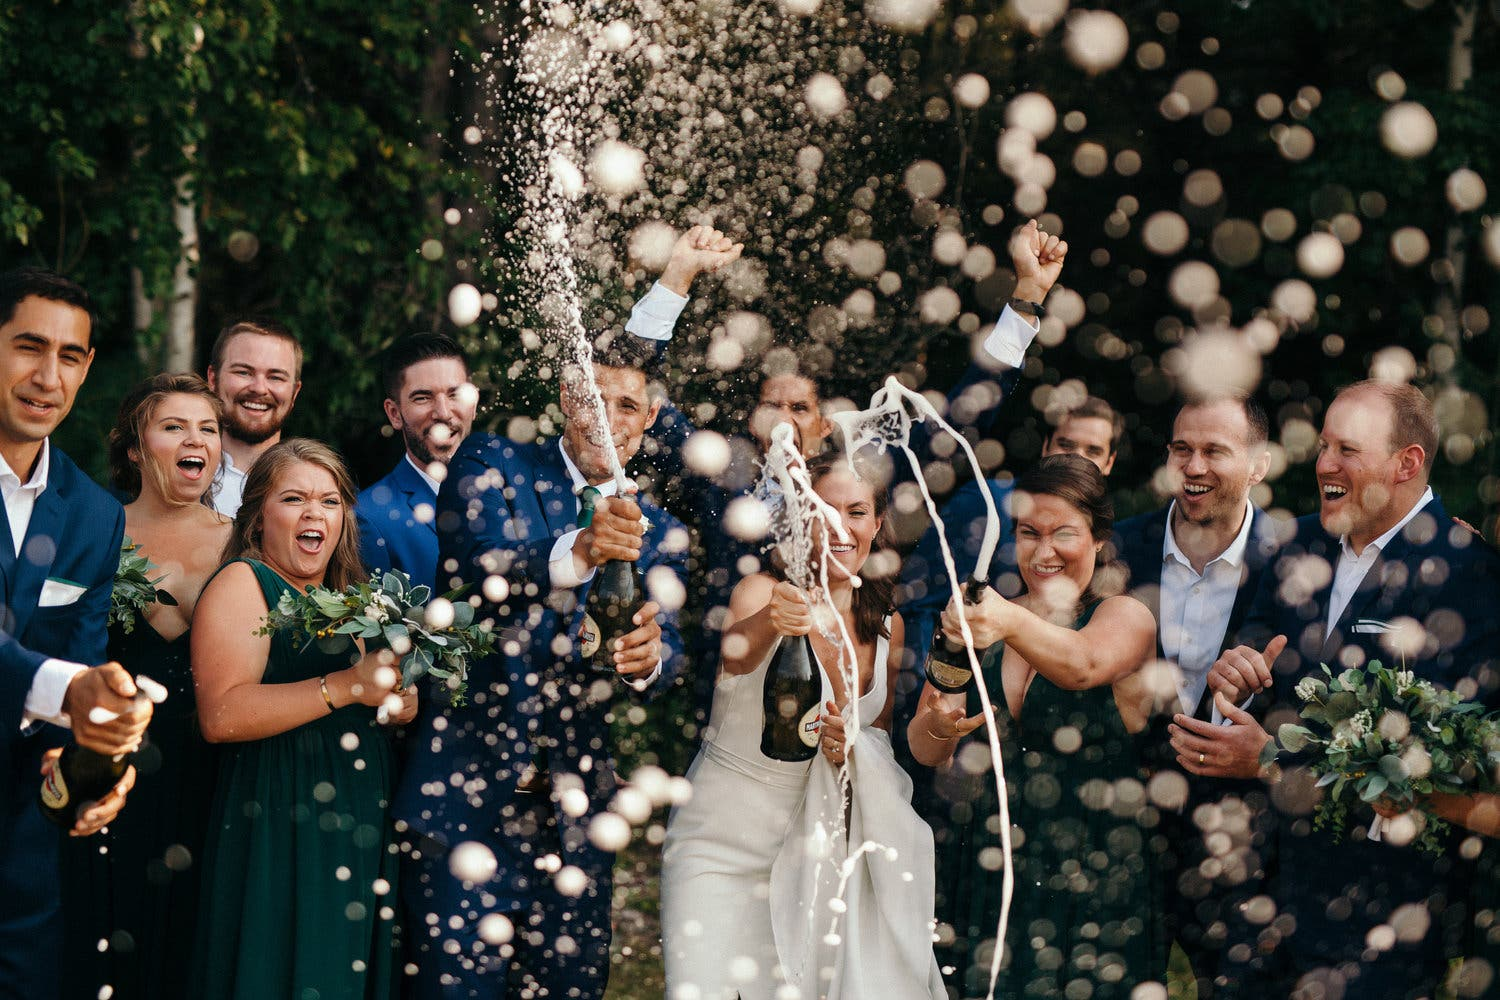 Cassie Roschs' Heart Warming Wedding Photography Will Make You Smile